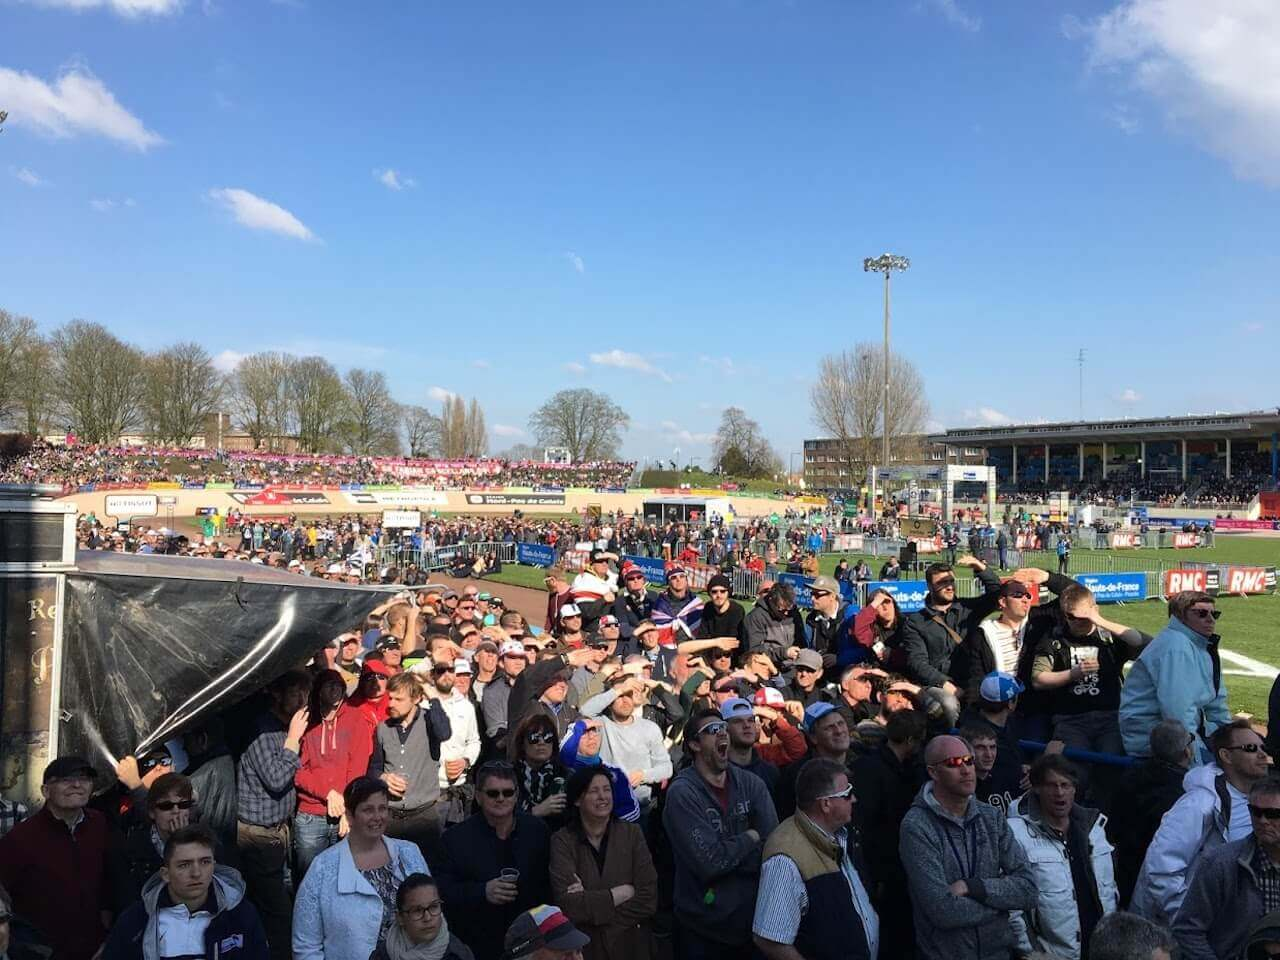 The Paris Roubaix race and the finish into the Roubaix velodrome is a once in a life time experience, it's a very unpredictable race and incredible to be a part of all the action.